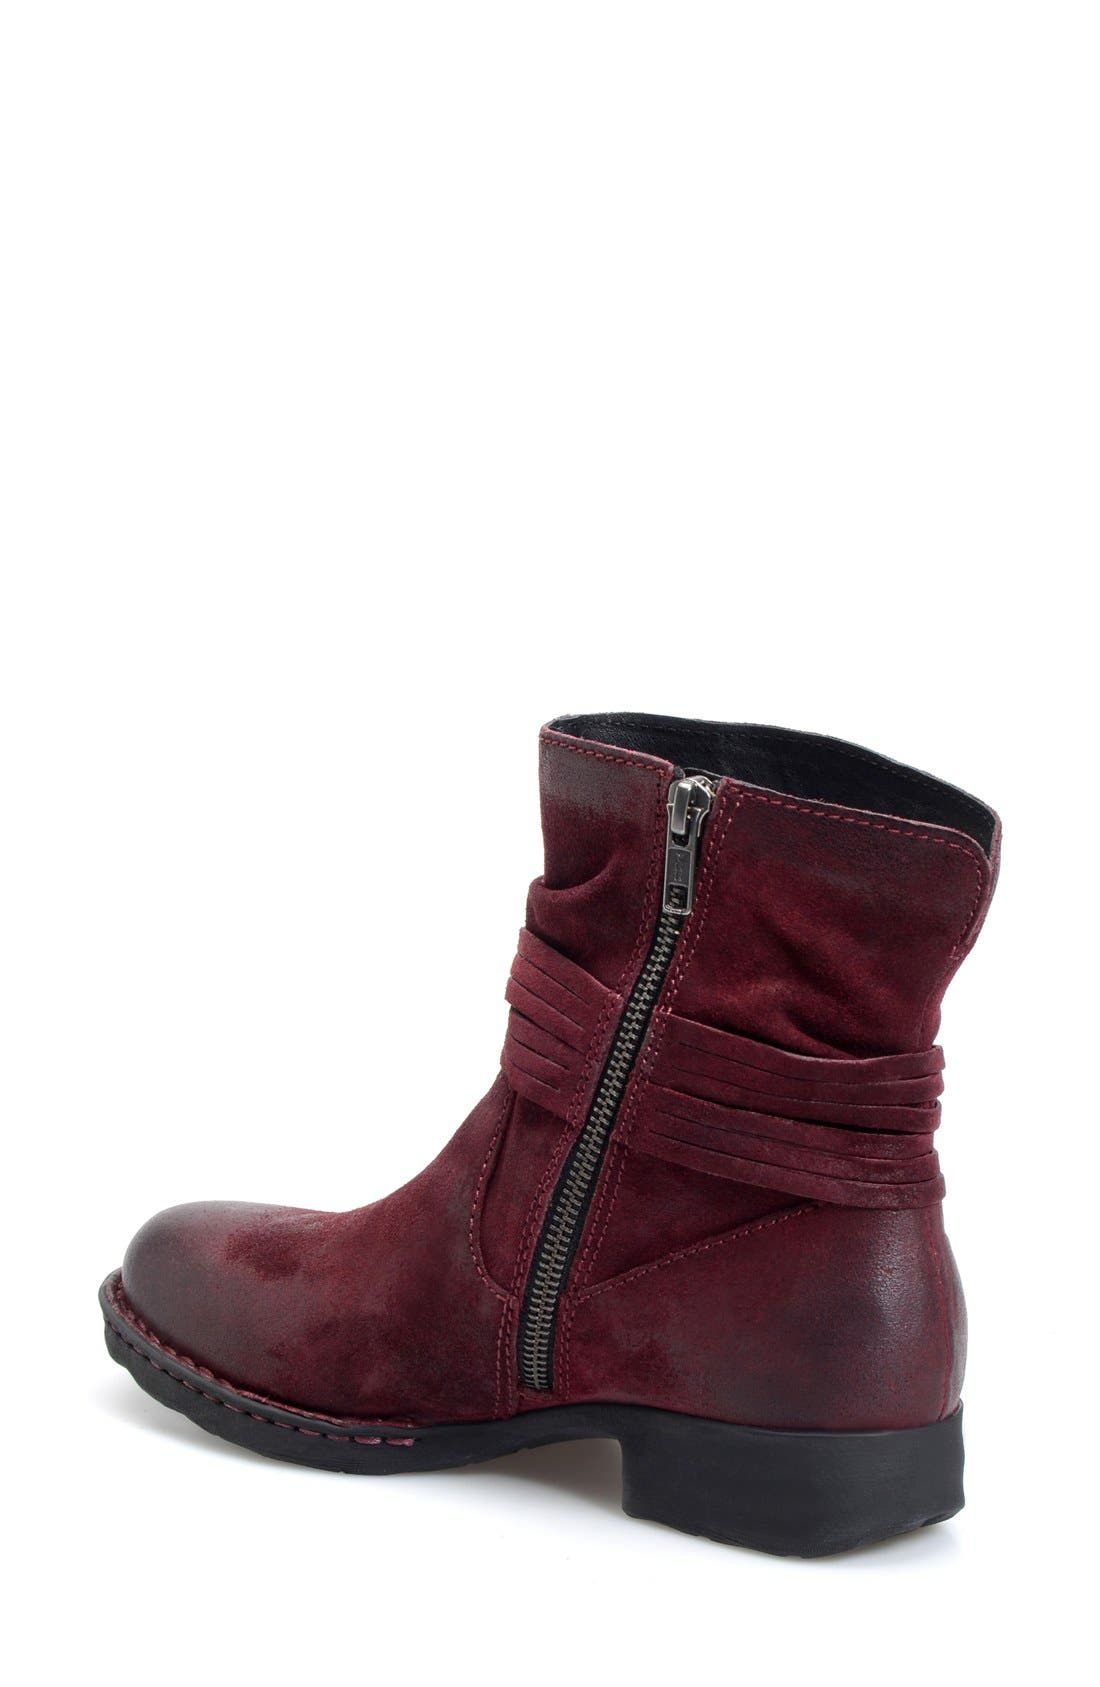 'Cross' Bootie,                             Alternate thumbnail 2, color,                             Amarena Distressed Leather